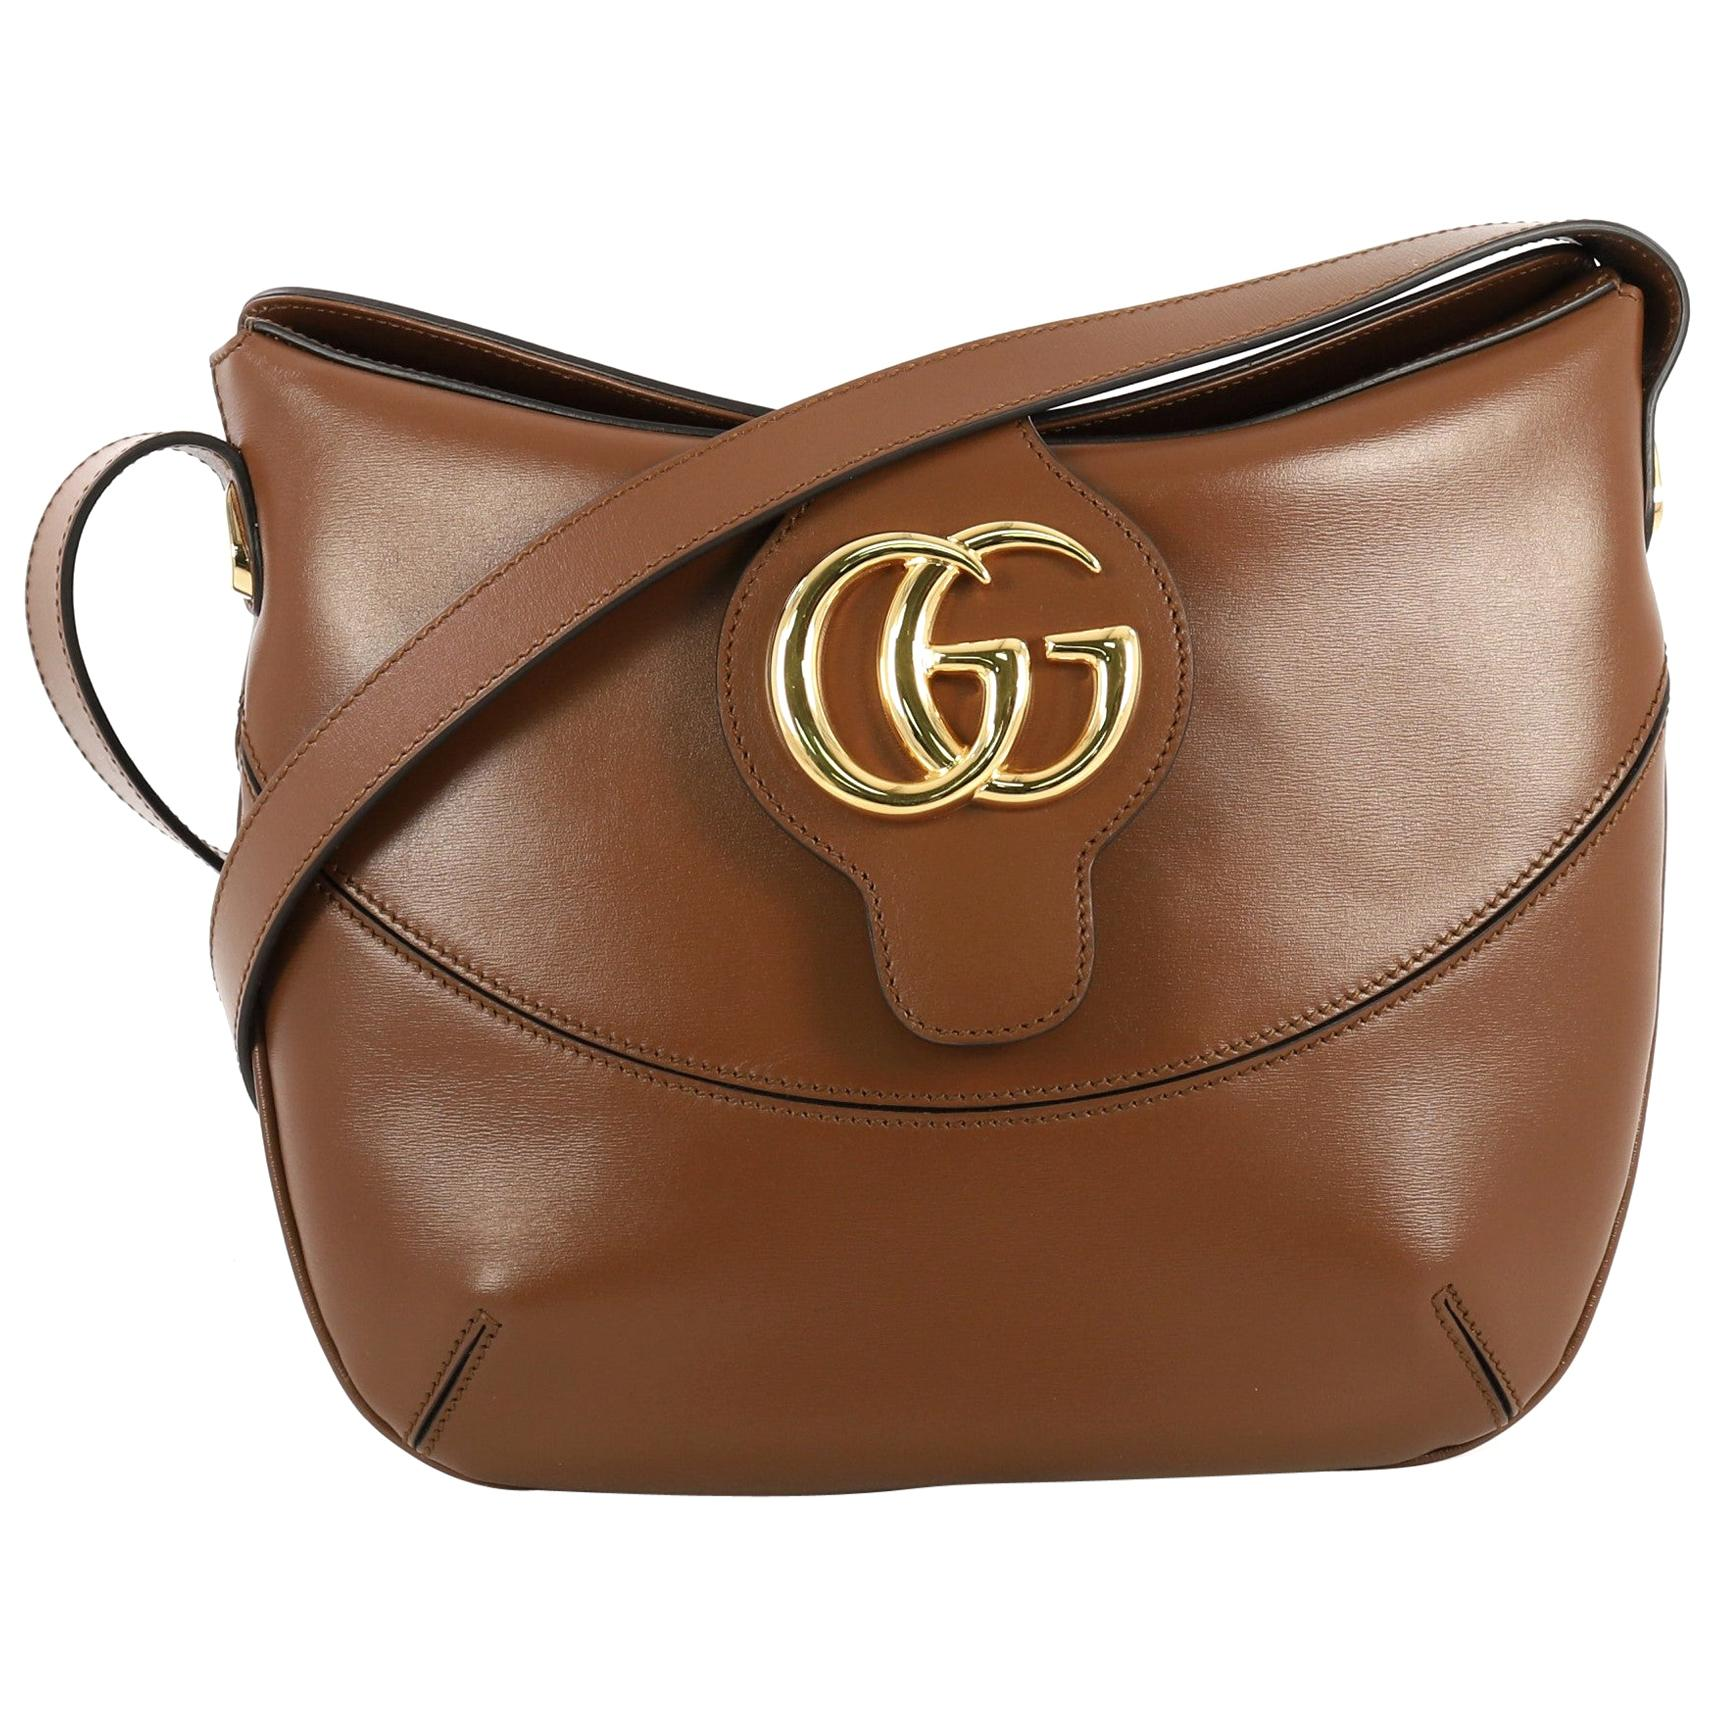 fdb64423a Gucci Leather Bags - 2076 For Sale on 1stdibs